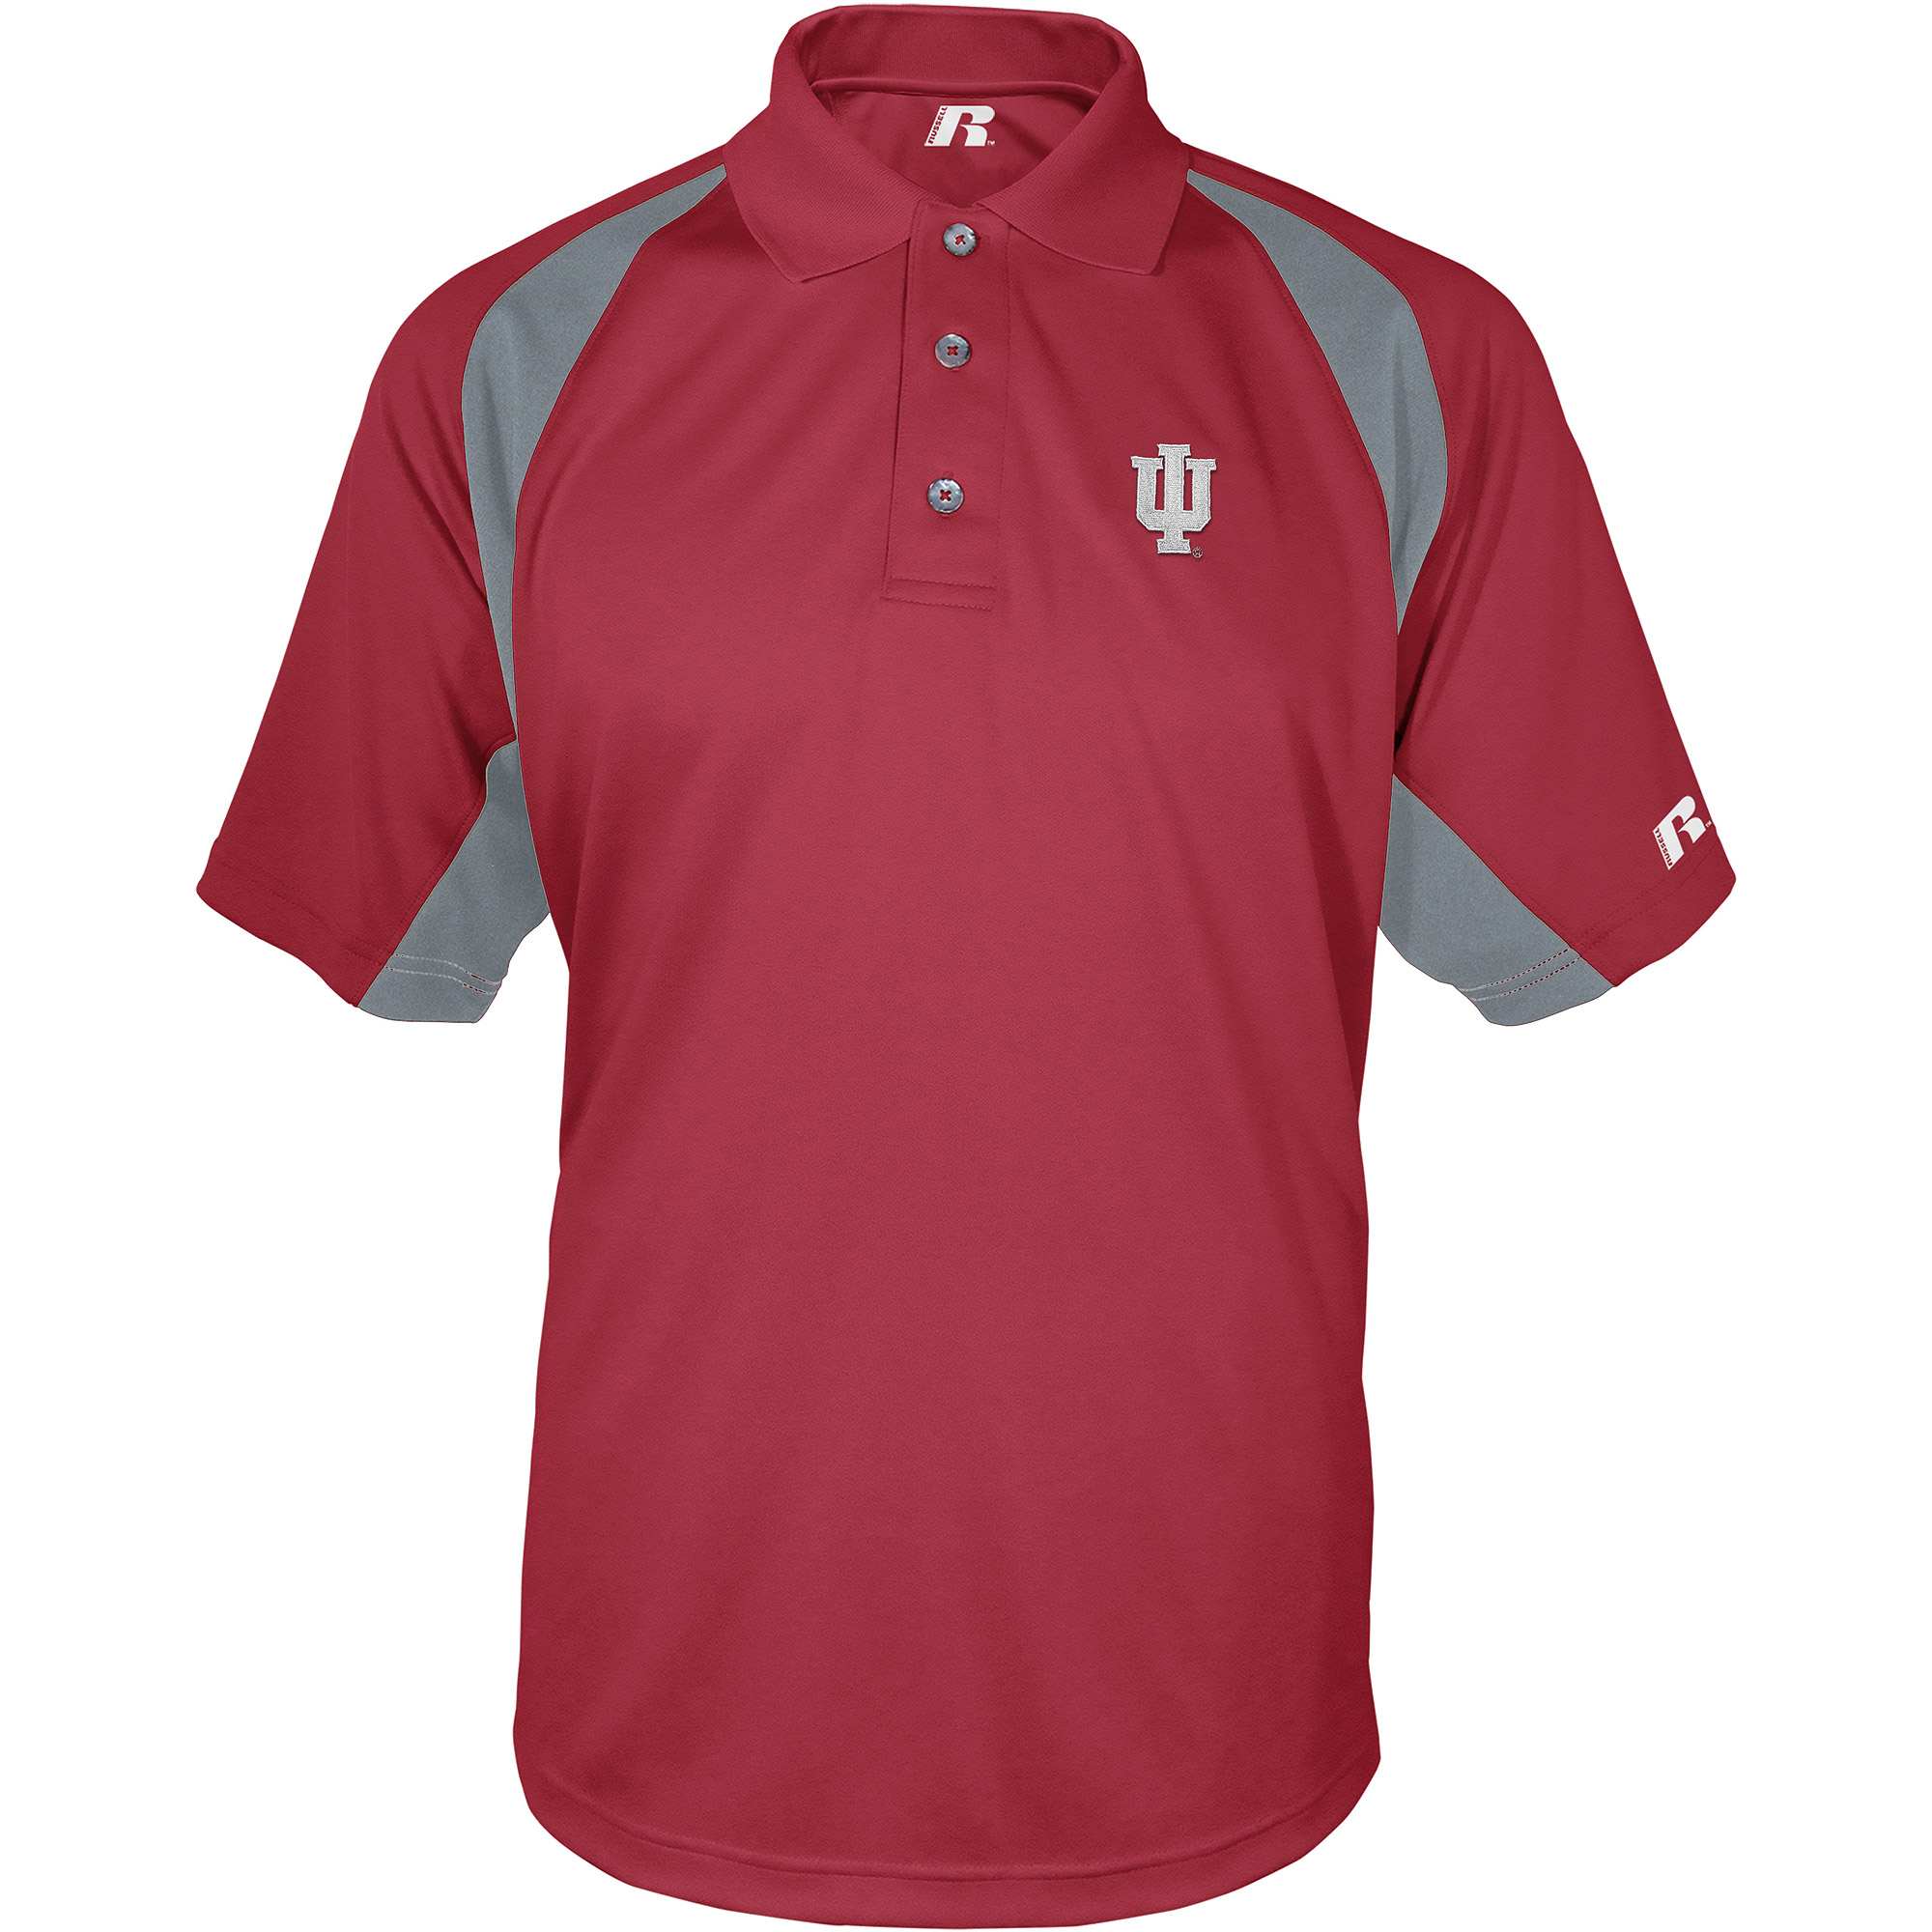 Russell NCAA Indiana Hoosiers, Men's Synthetic Polo